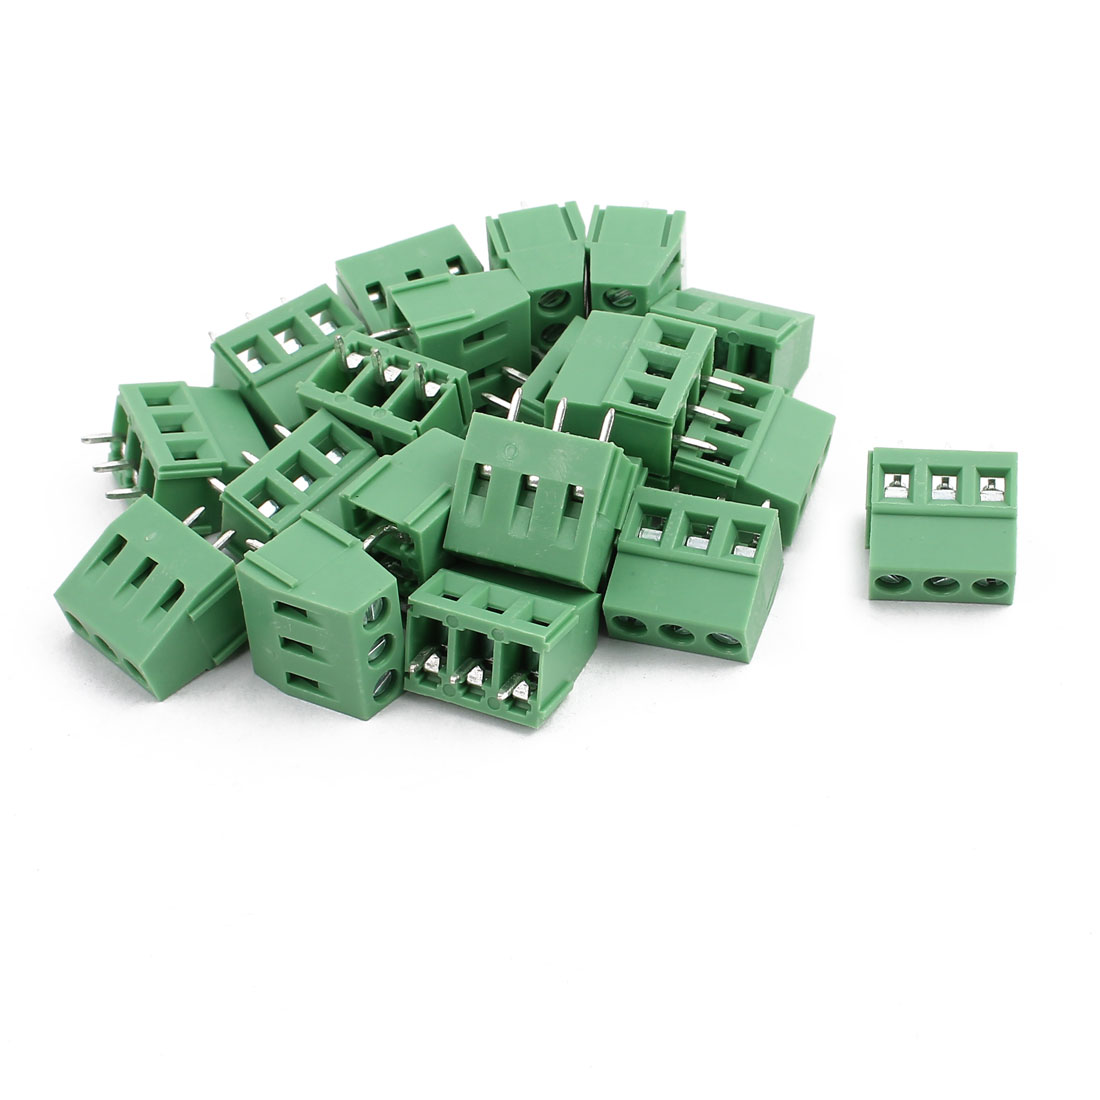 20Pcs KF128 AC300V 10A 3P 5.08mm Pitch Screw Type PCB Terminal Blocks Connector